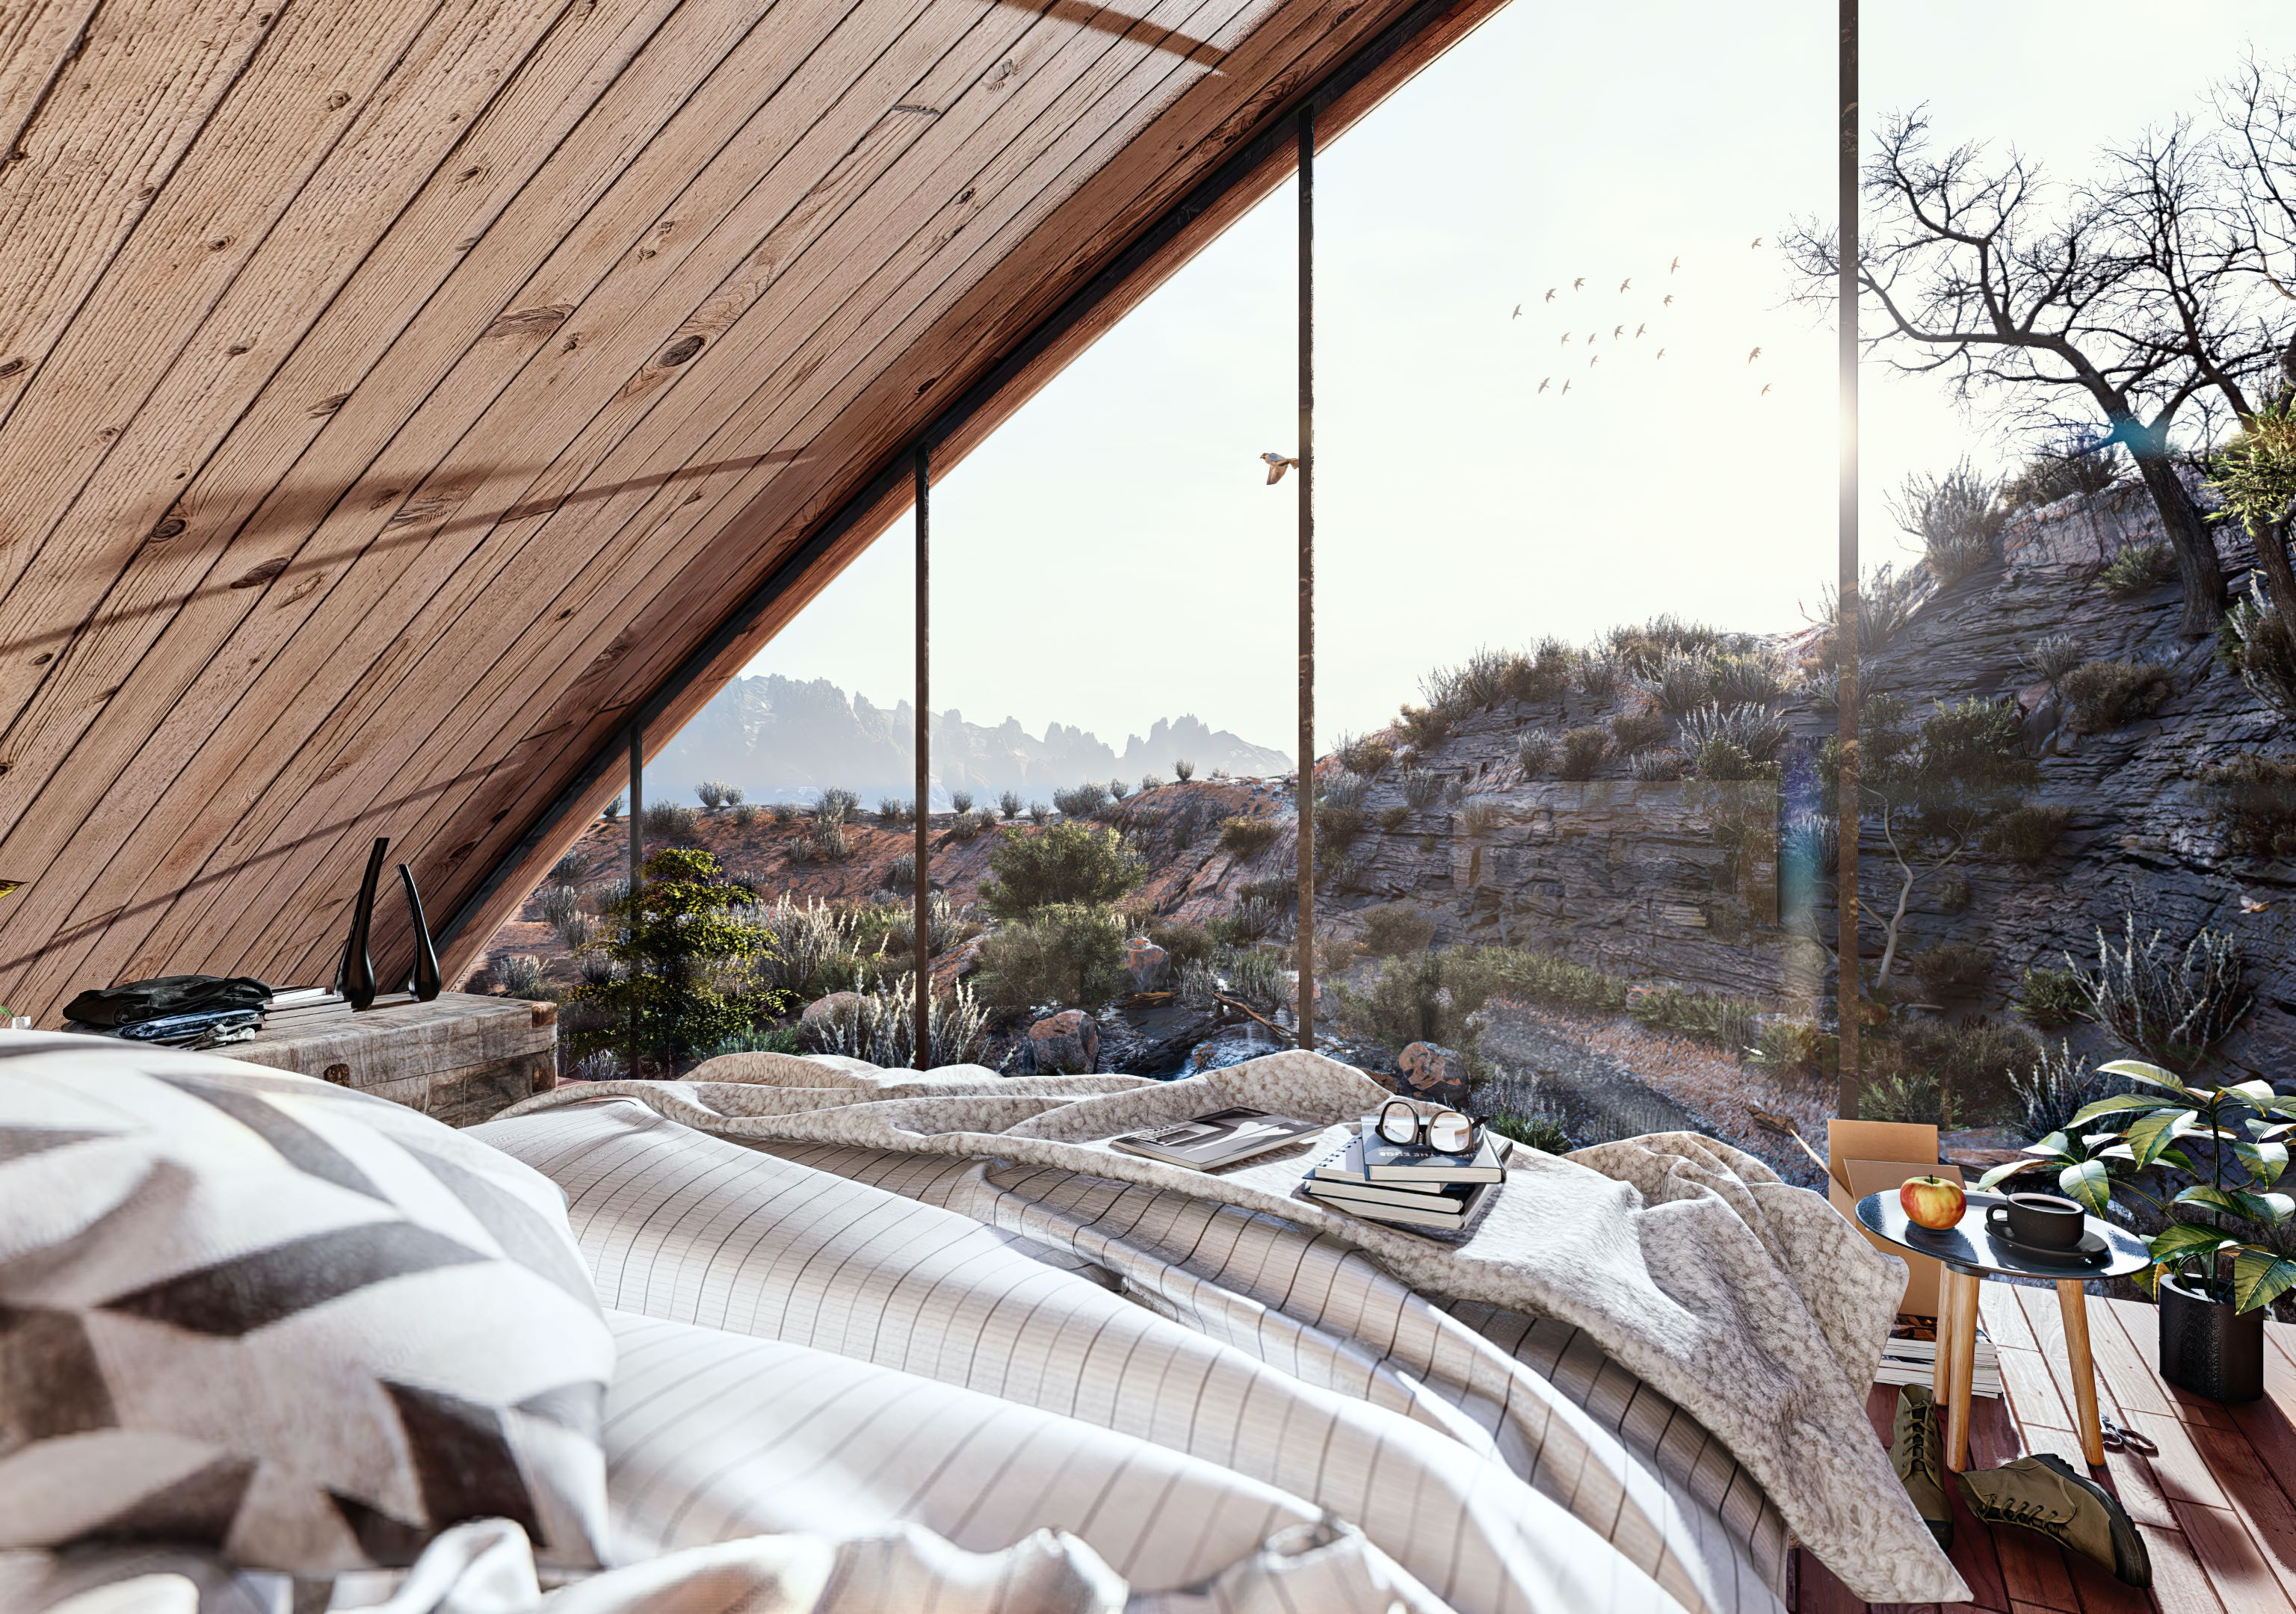 bedroom with Mountain View through window